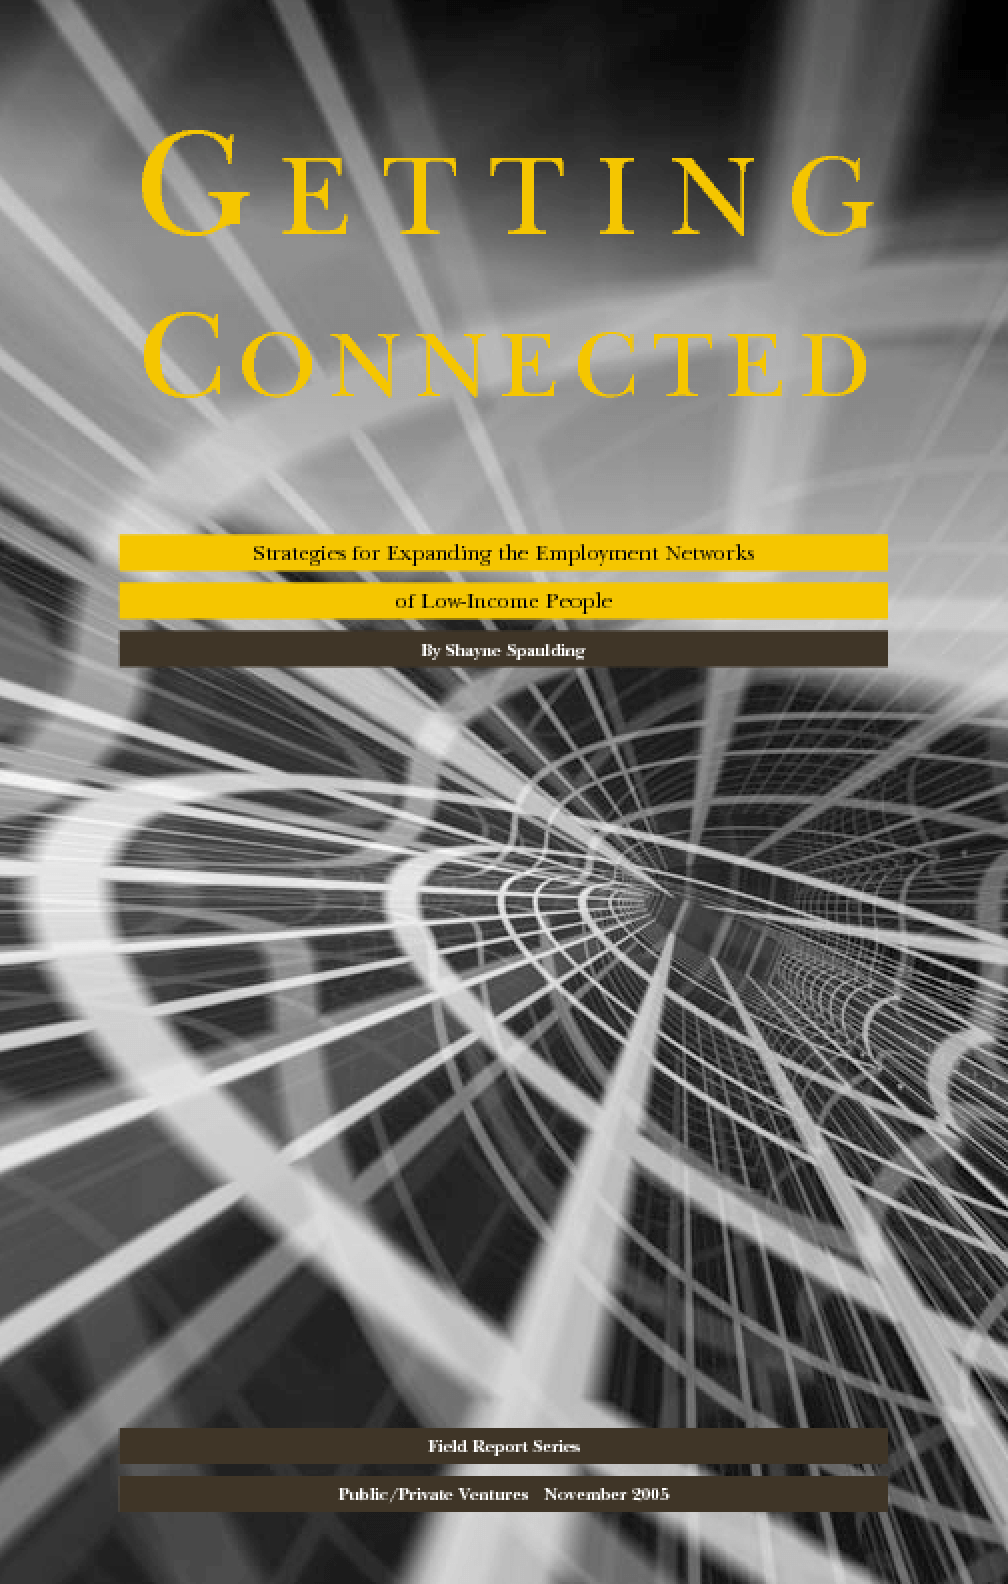 Getting Connected: Strategies for Expanding the Employment Networks of Low-Income People